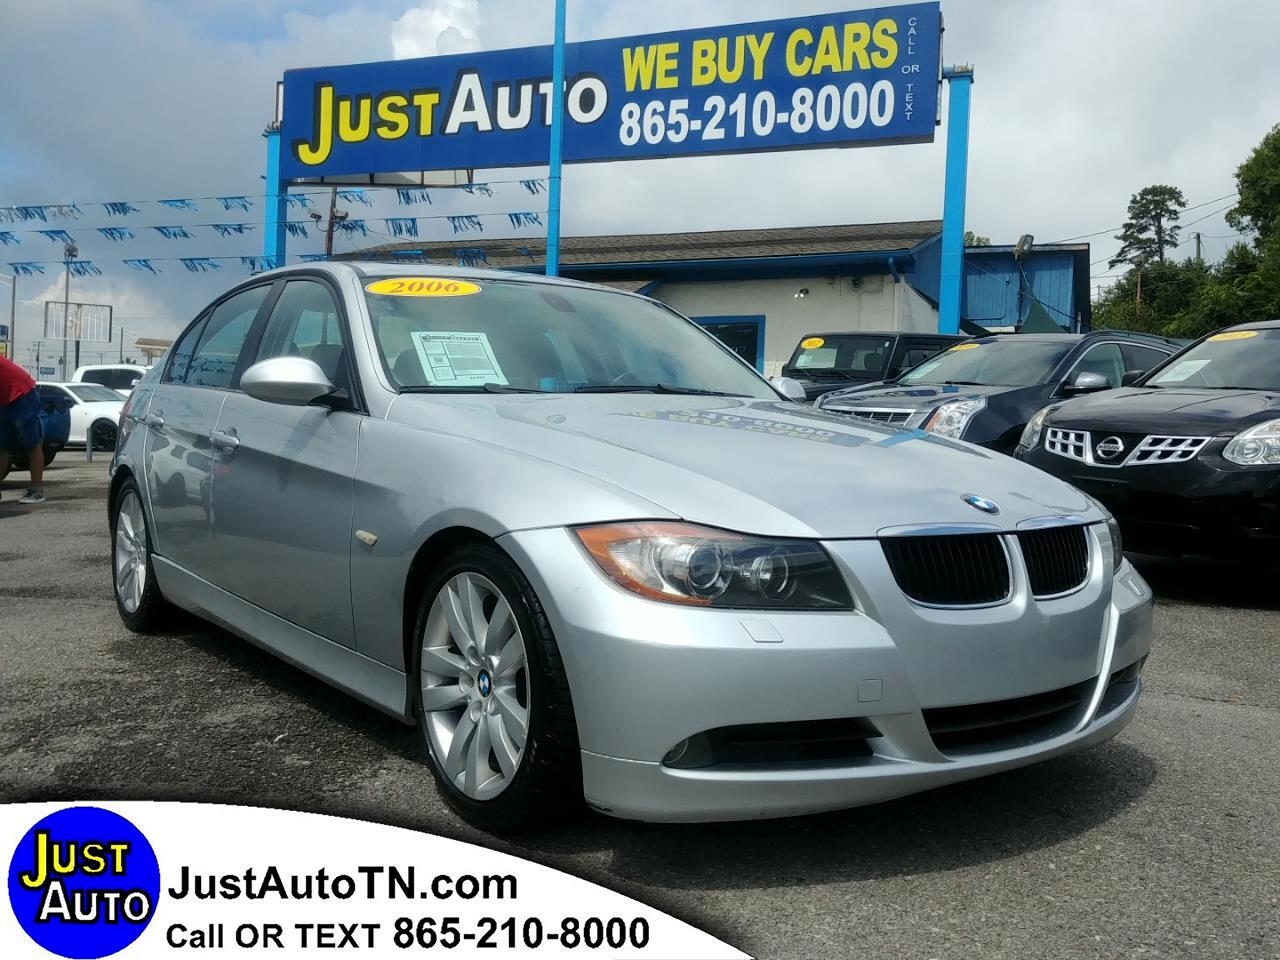 2006 BMW 3 Series 325i 4dr Sdn RWD South Africa